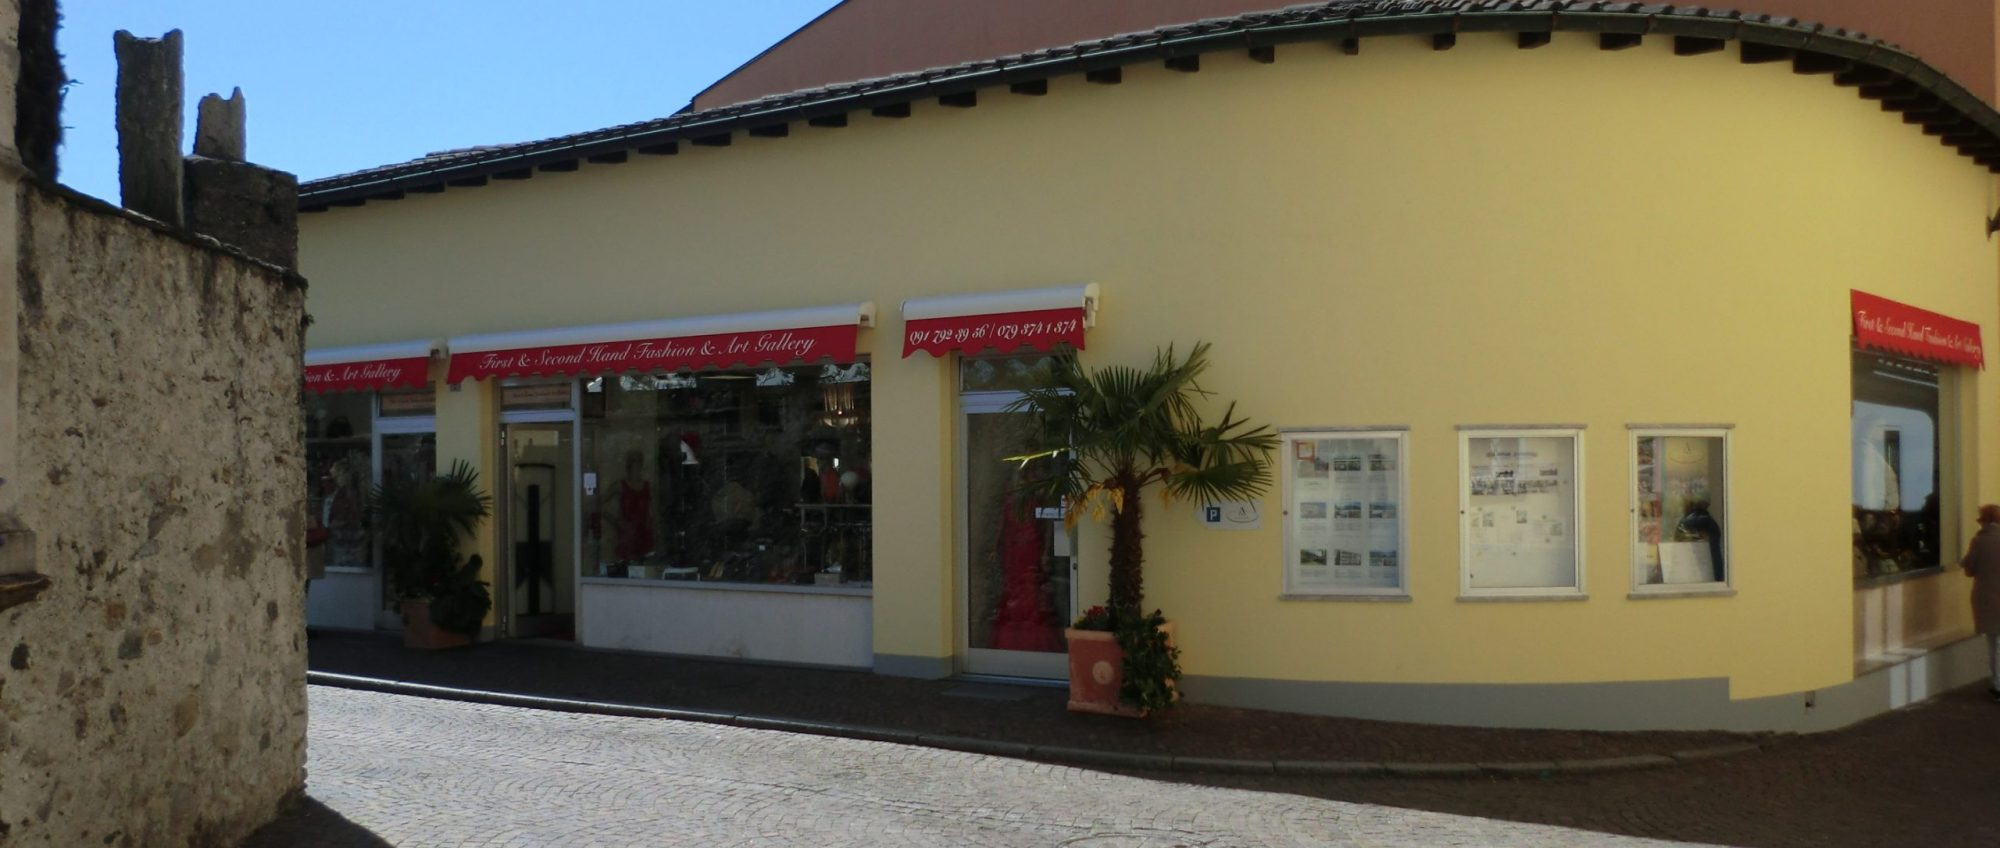 FIRST & SECOND FASHION & ART GALLERY, ASCONA